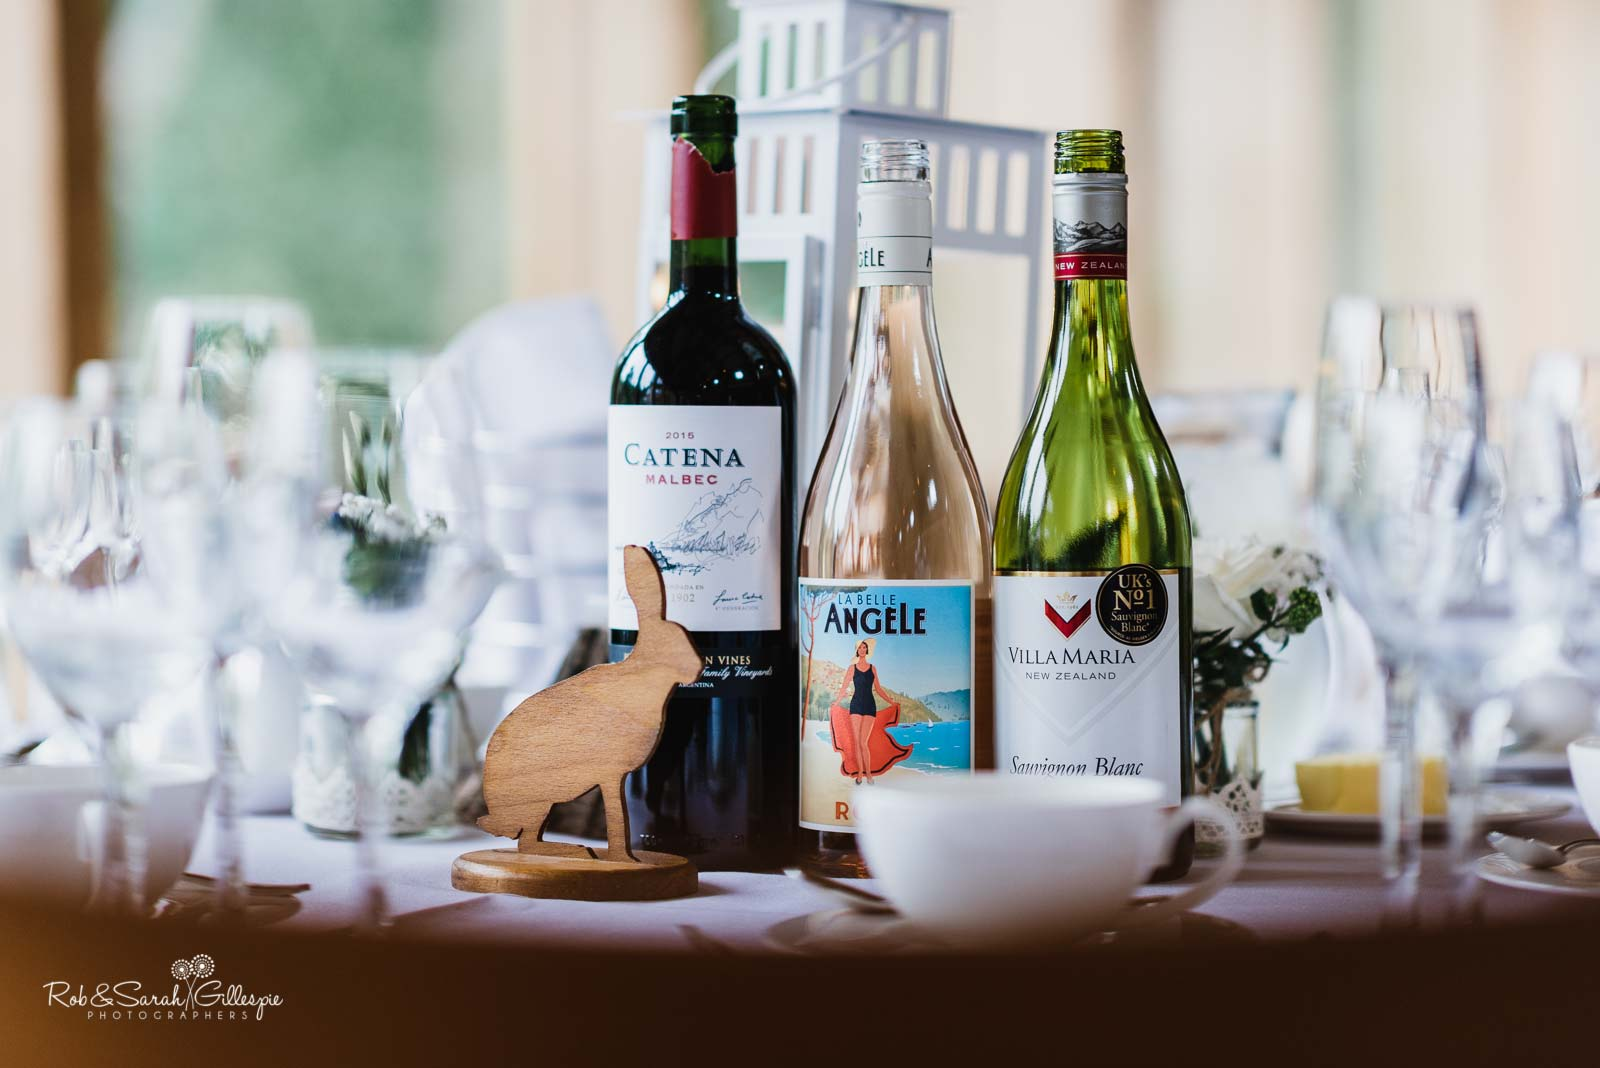 Bottles of wine and table details at The Mill Barns wedding